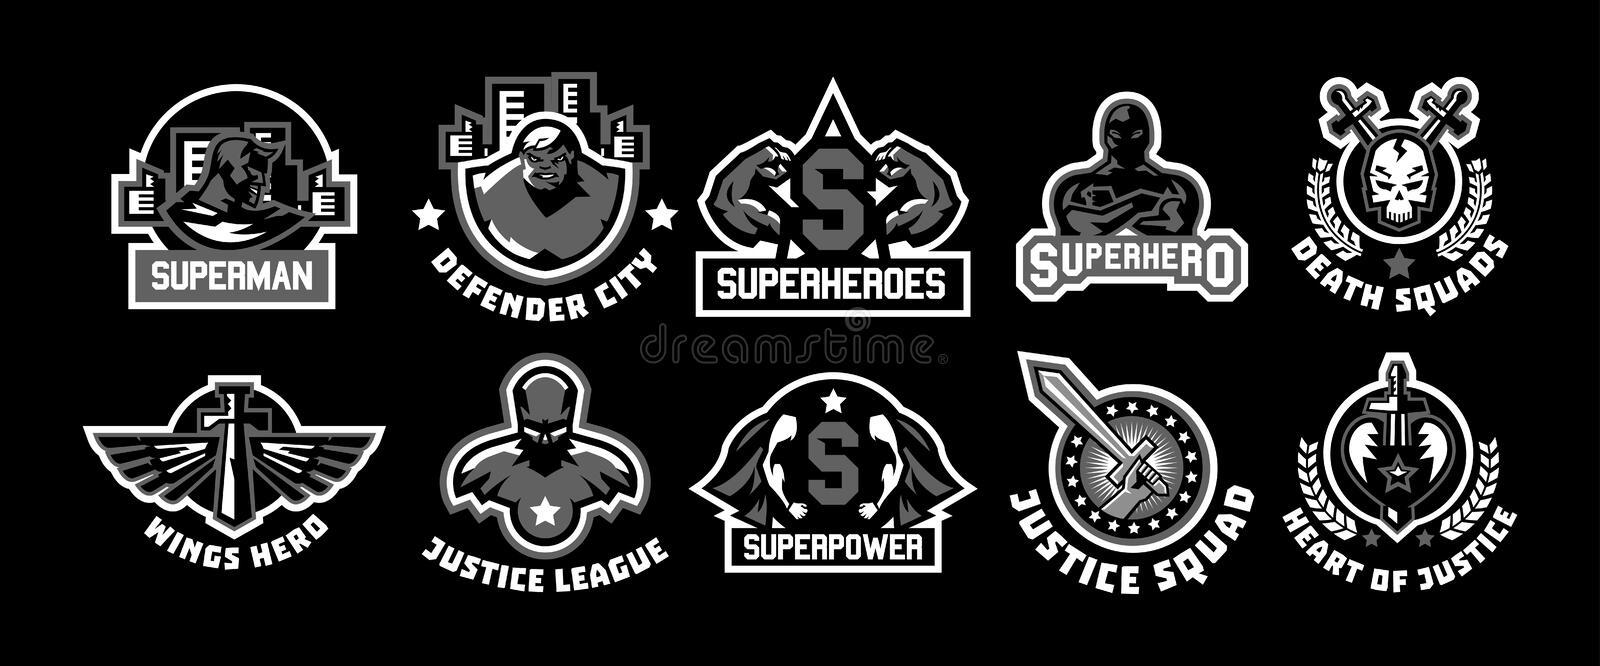 Set of superhero logos. A collection of images of superman. The suit, raincoat, silhouette, image, face, muscles, city vector illustration